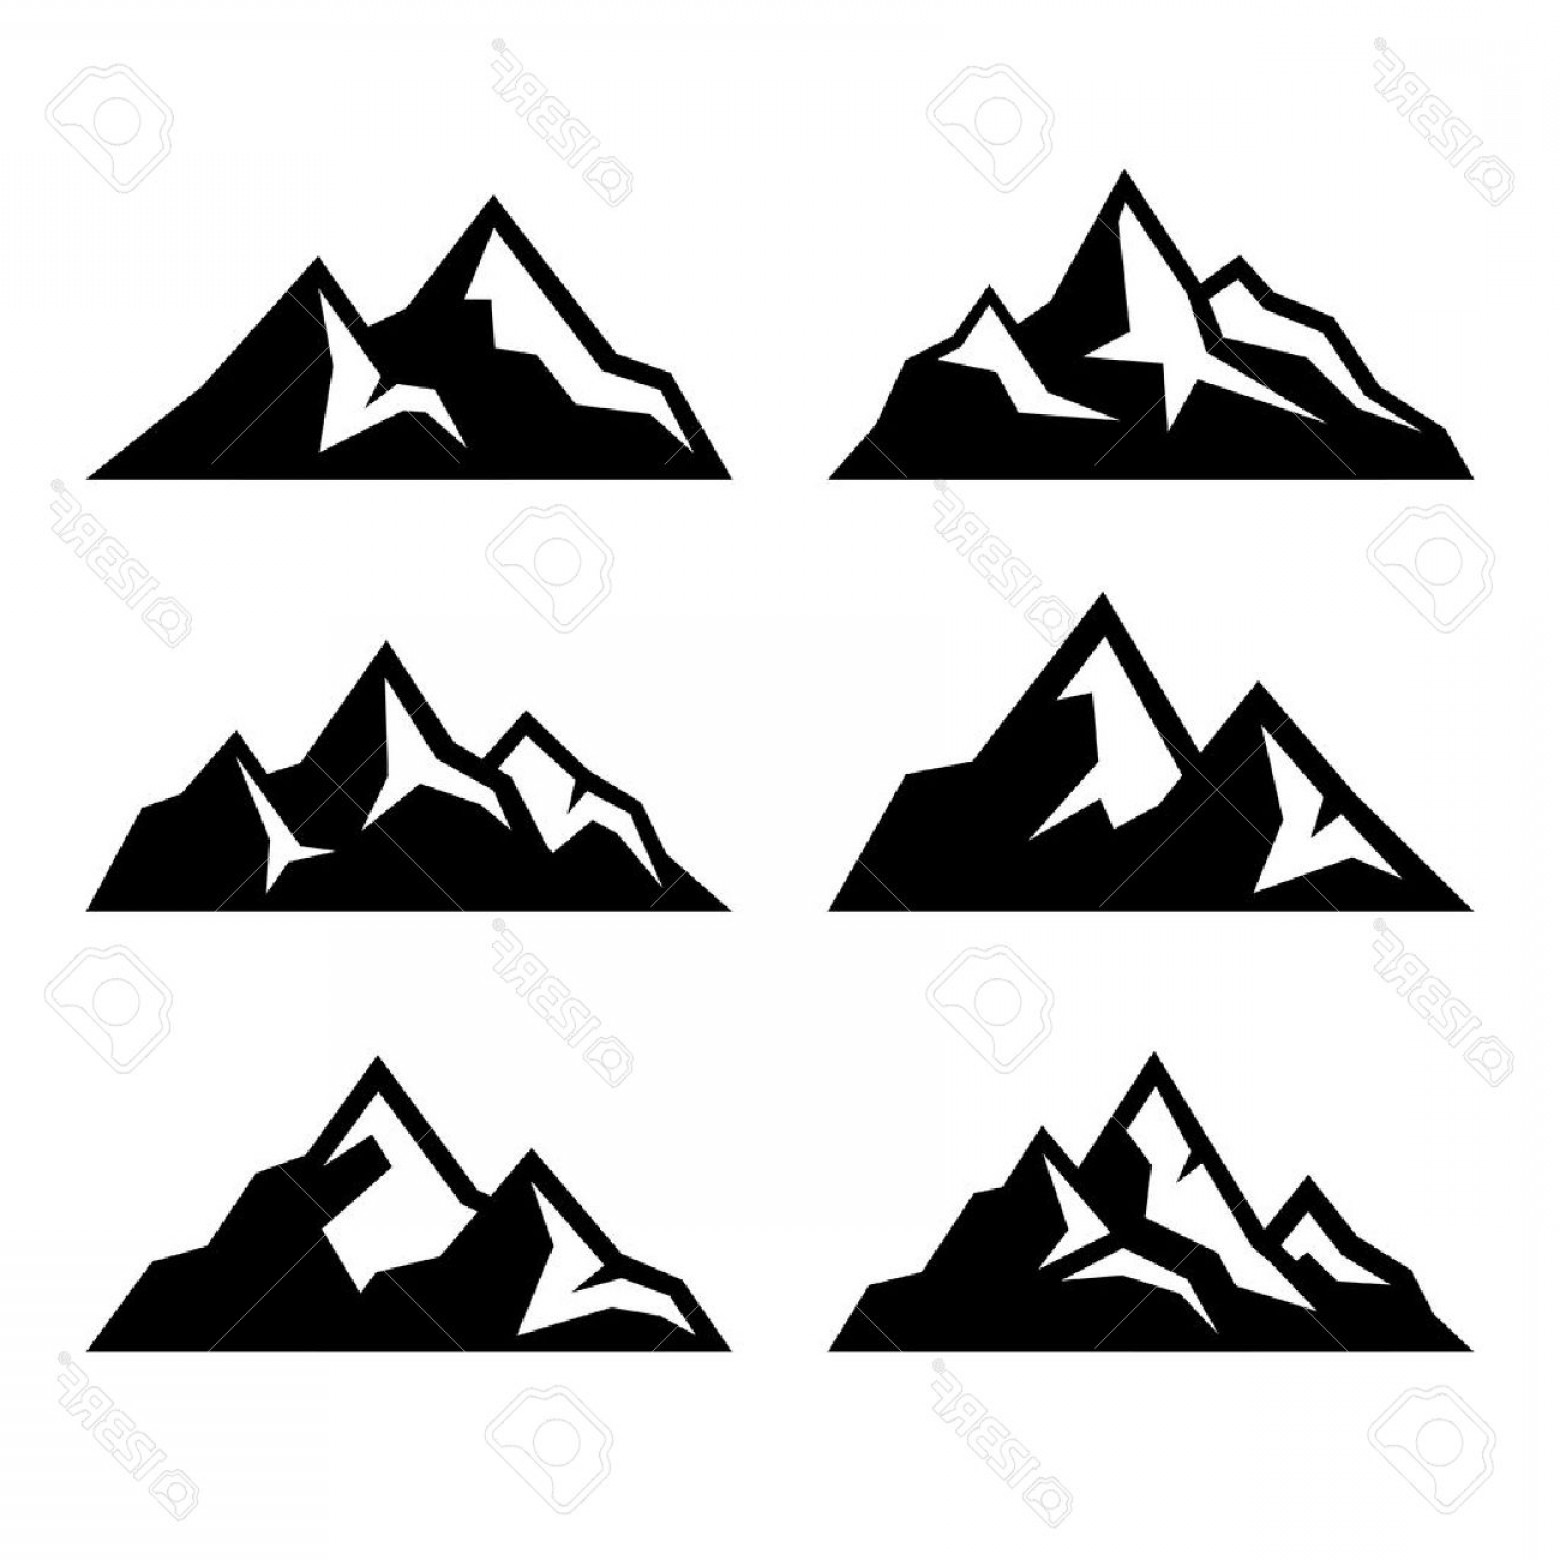 White Mountain Silhouette Vector Free: Photostock Vector Mountain Icons Set On White Background Vector Illustration